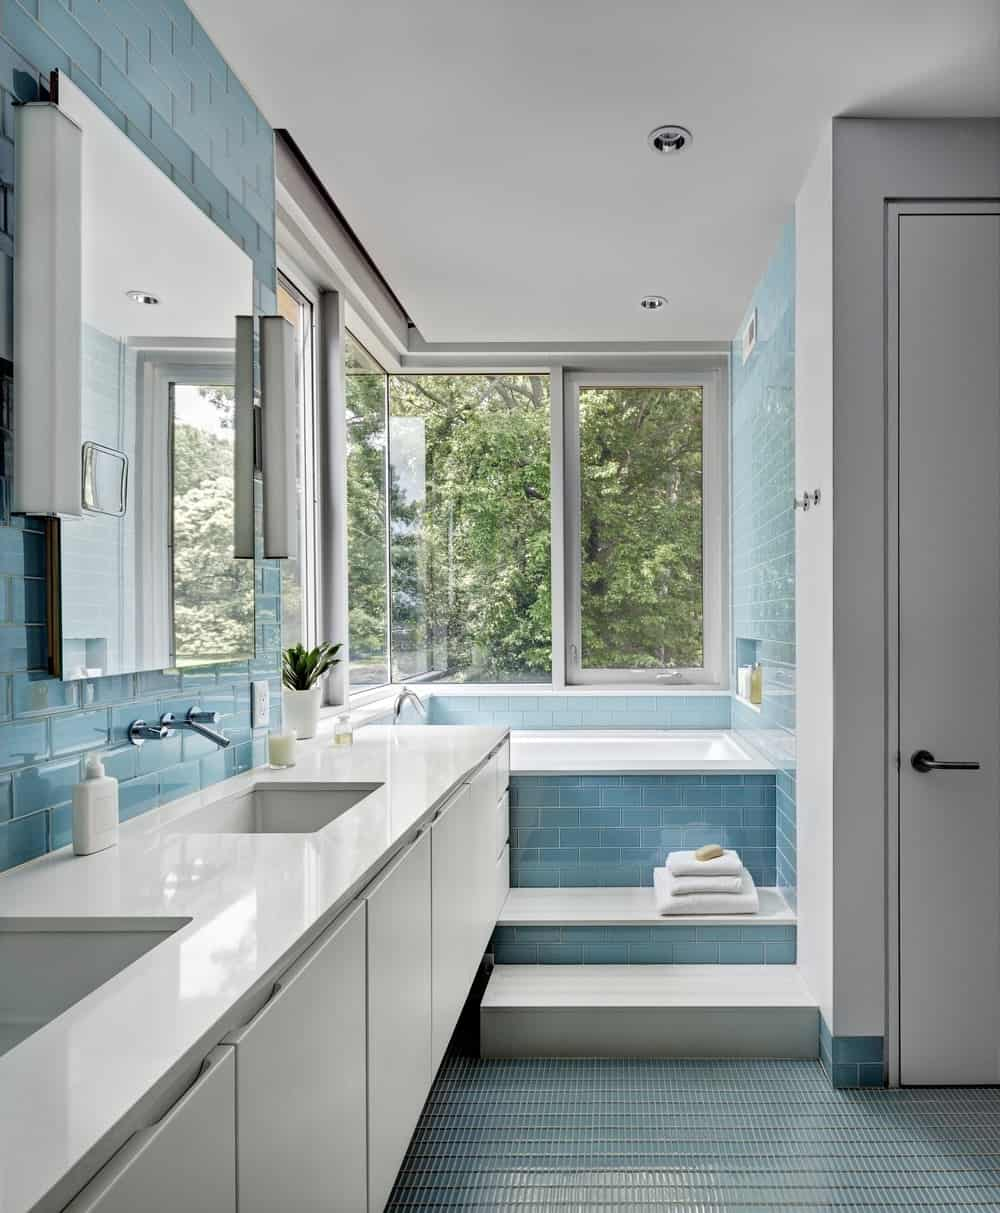 This master bathroom features stylish blue tiles floors and walls. The room also offers a corner tub near the windows and a double sink.